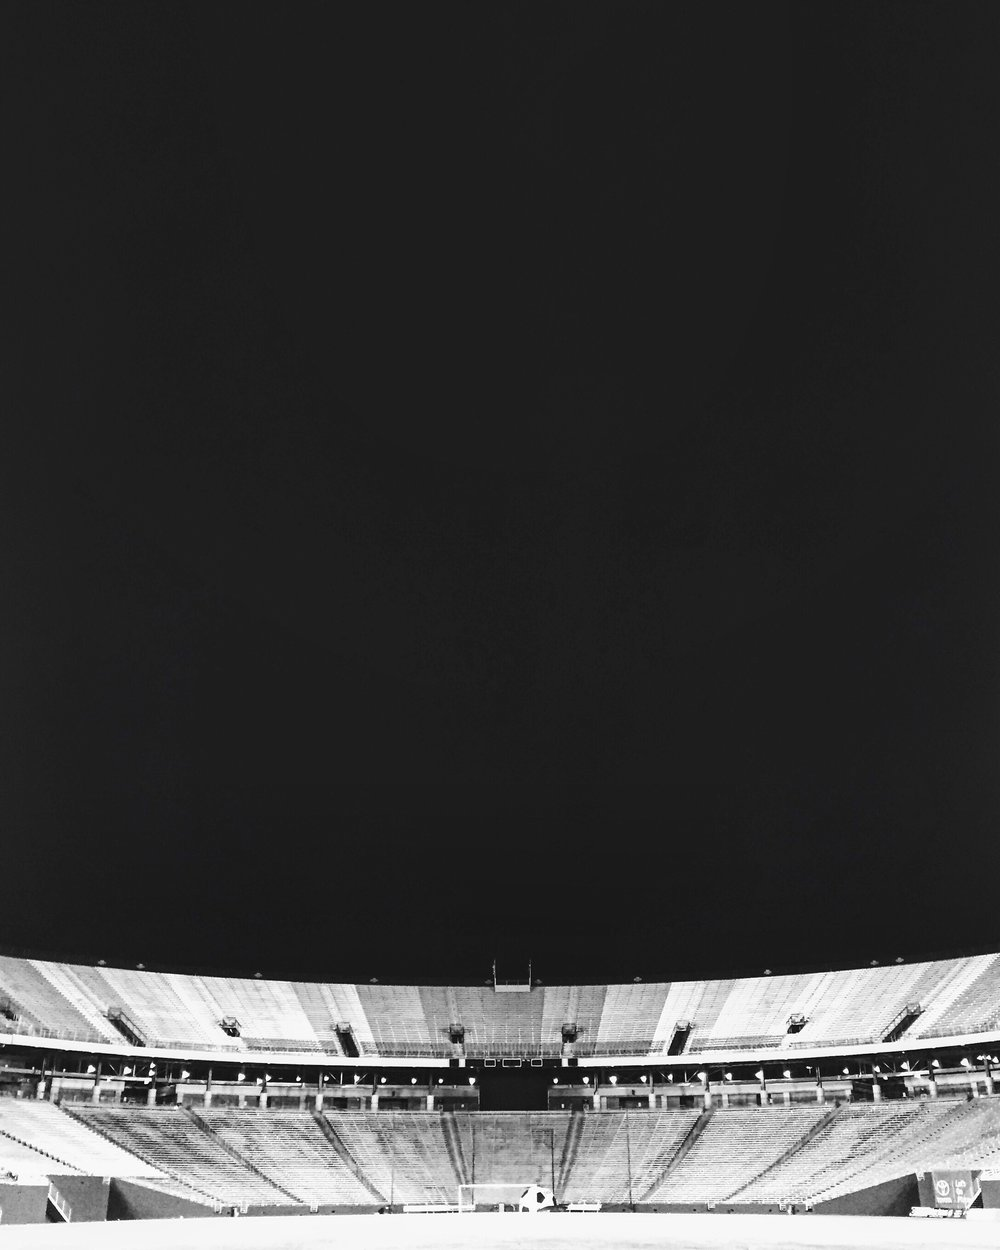 The Cotton Bowl, Dallas, Texas - Bobby snapped this photo of the Cotton Bowl as he was the last person to leave the pitch after the U20 MNT beat Monterrey U-19 1-0 in a well-attended tournament opener at the 2016 Dallas Cup.